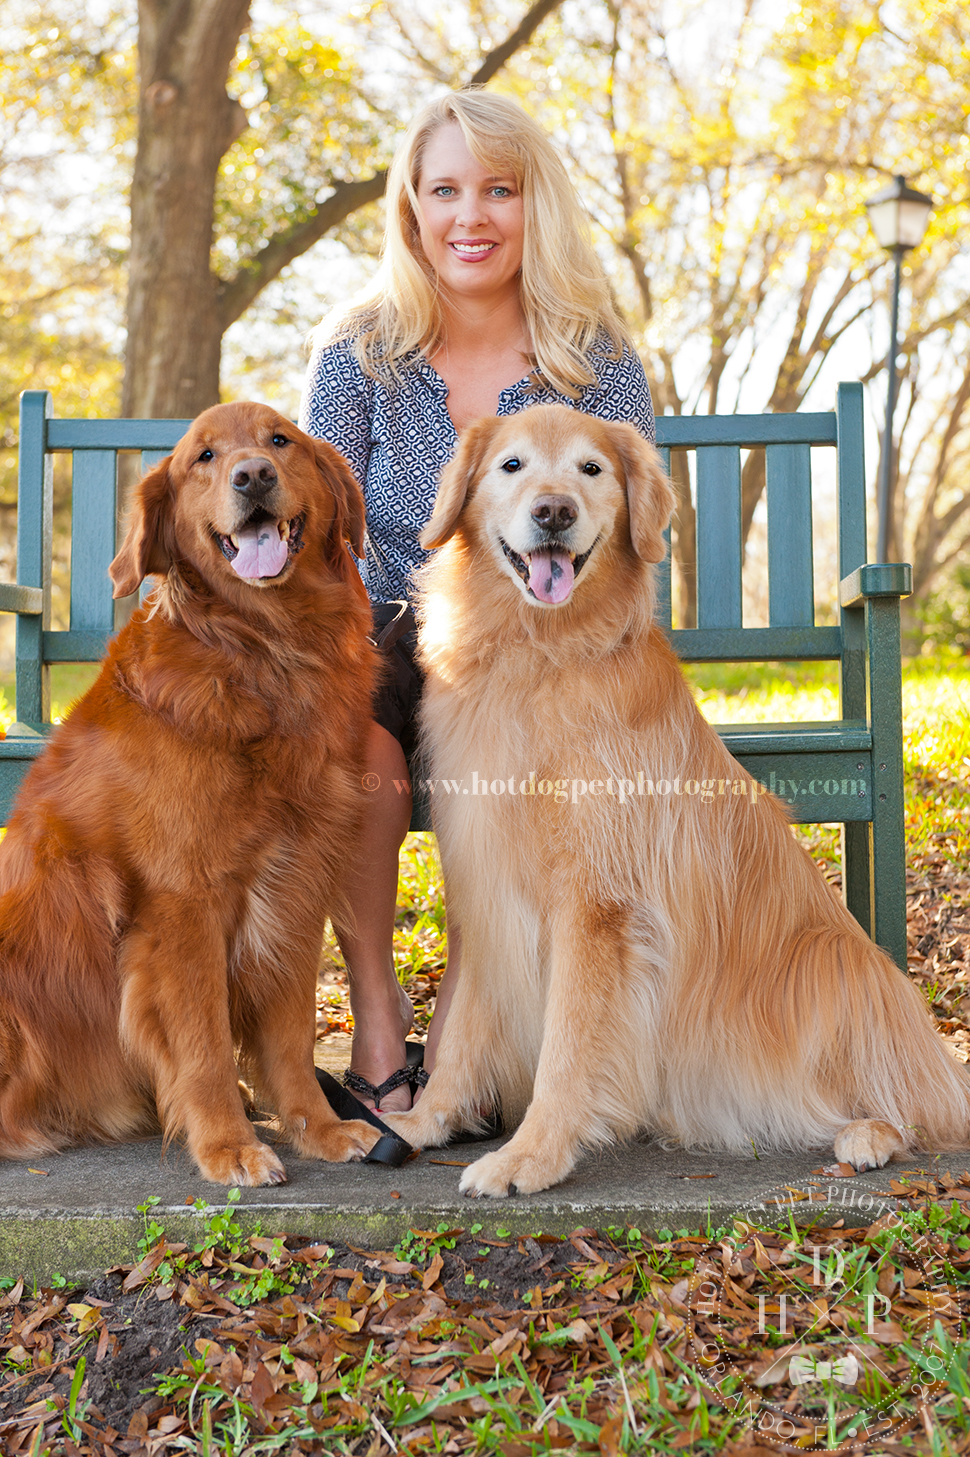 Orlando Pet Photography by Hot Dog! Pet Photography